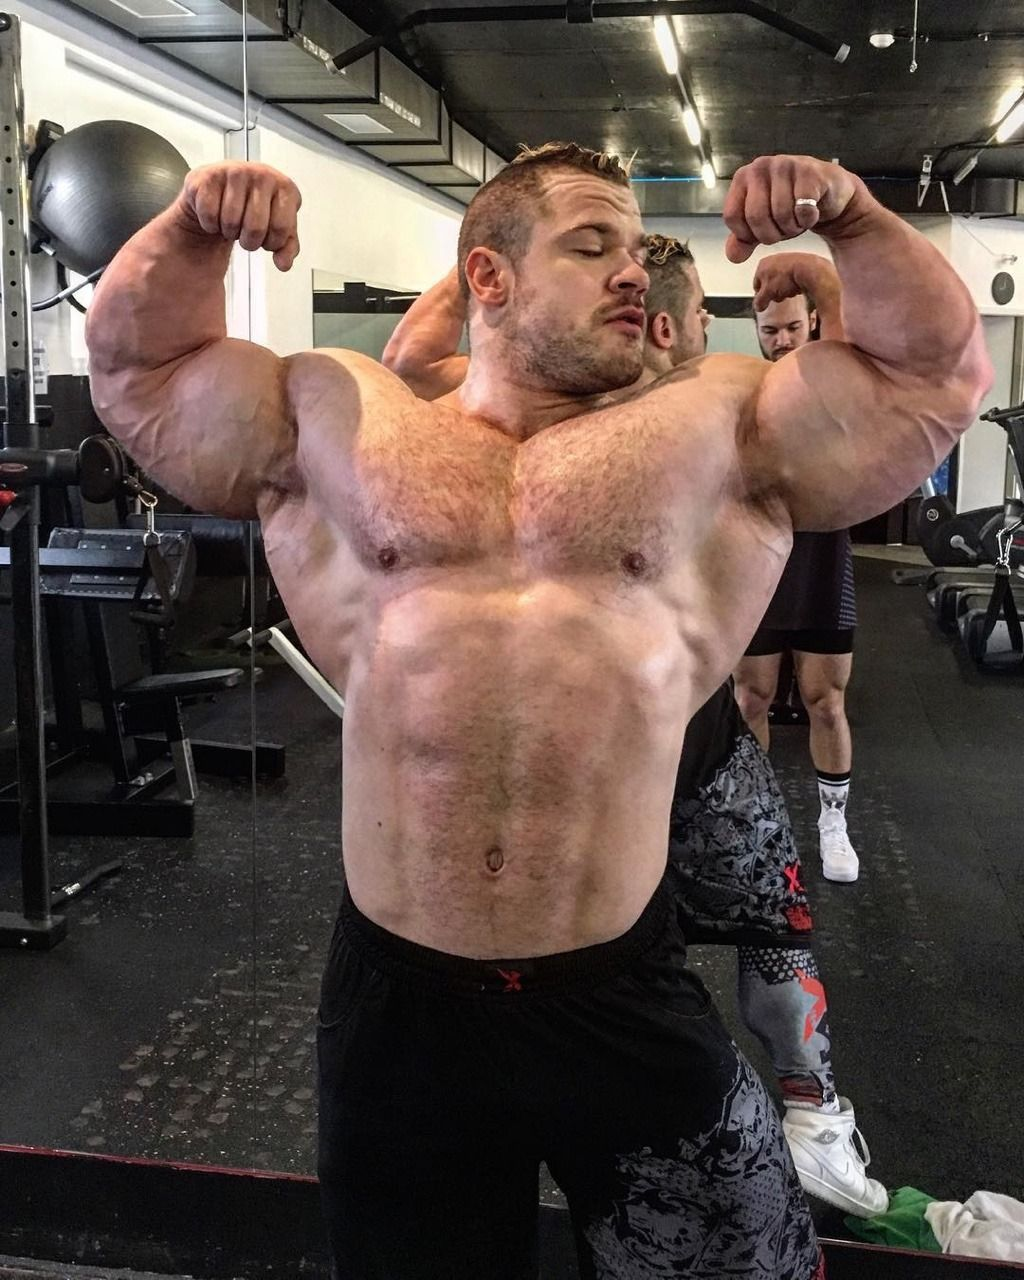 Synthol Shoulders: Bloke Shows Off Brand New Synthol-Enlarged Biceps